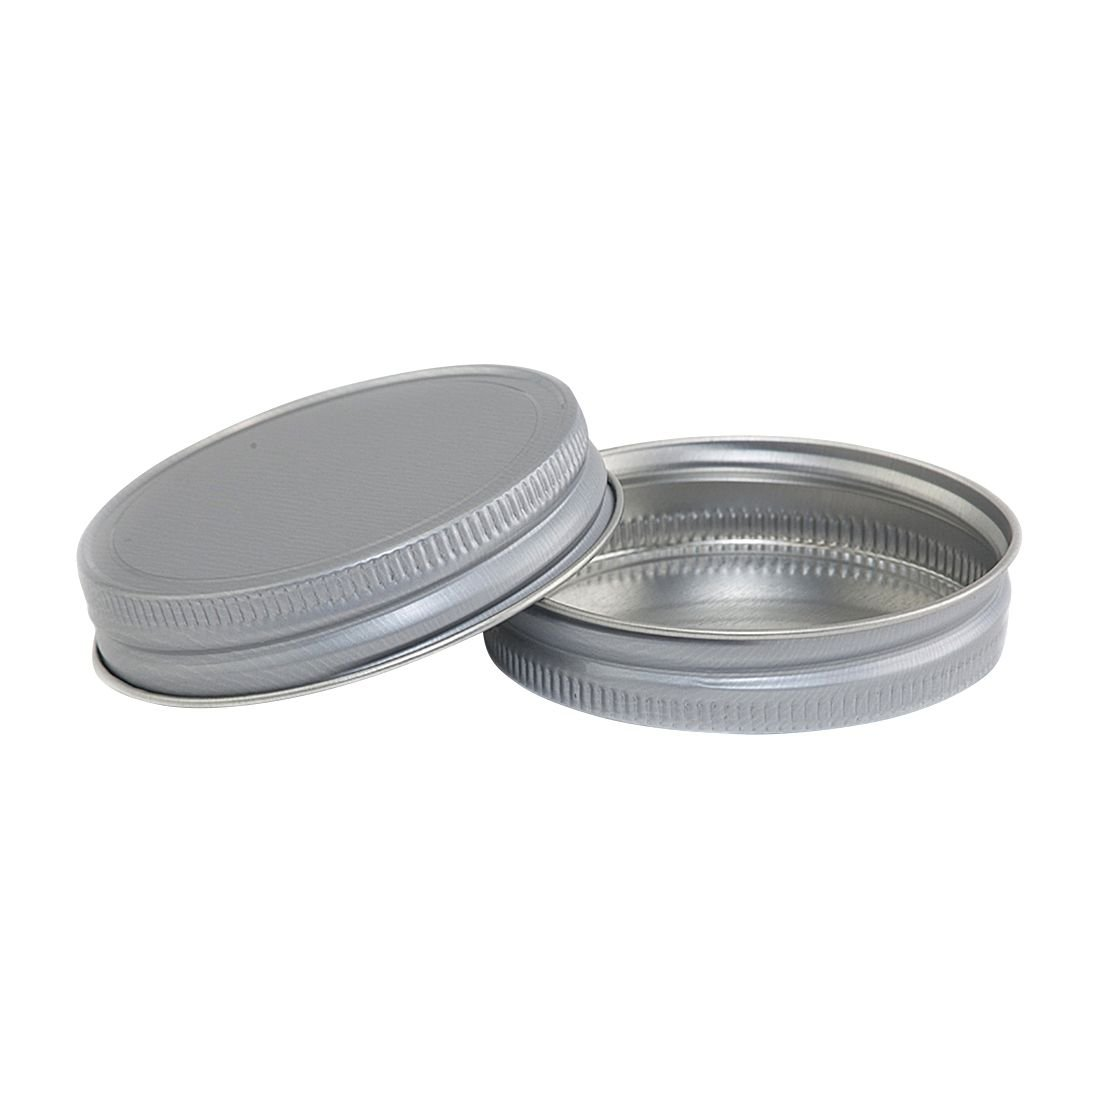 North Mountain Supply Regular Mouth Metal One Piece Mason Jar Unlined Lids - Flat Top - Pack of 72 - Aluminum Colored